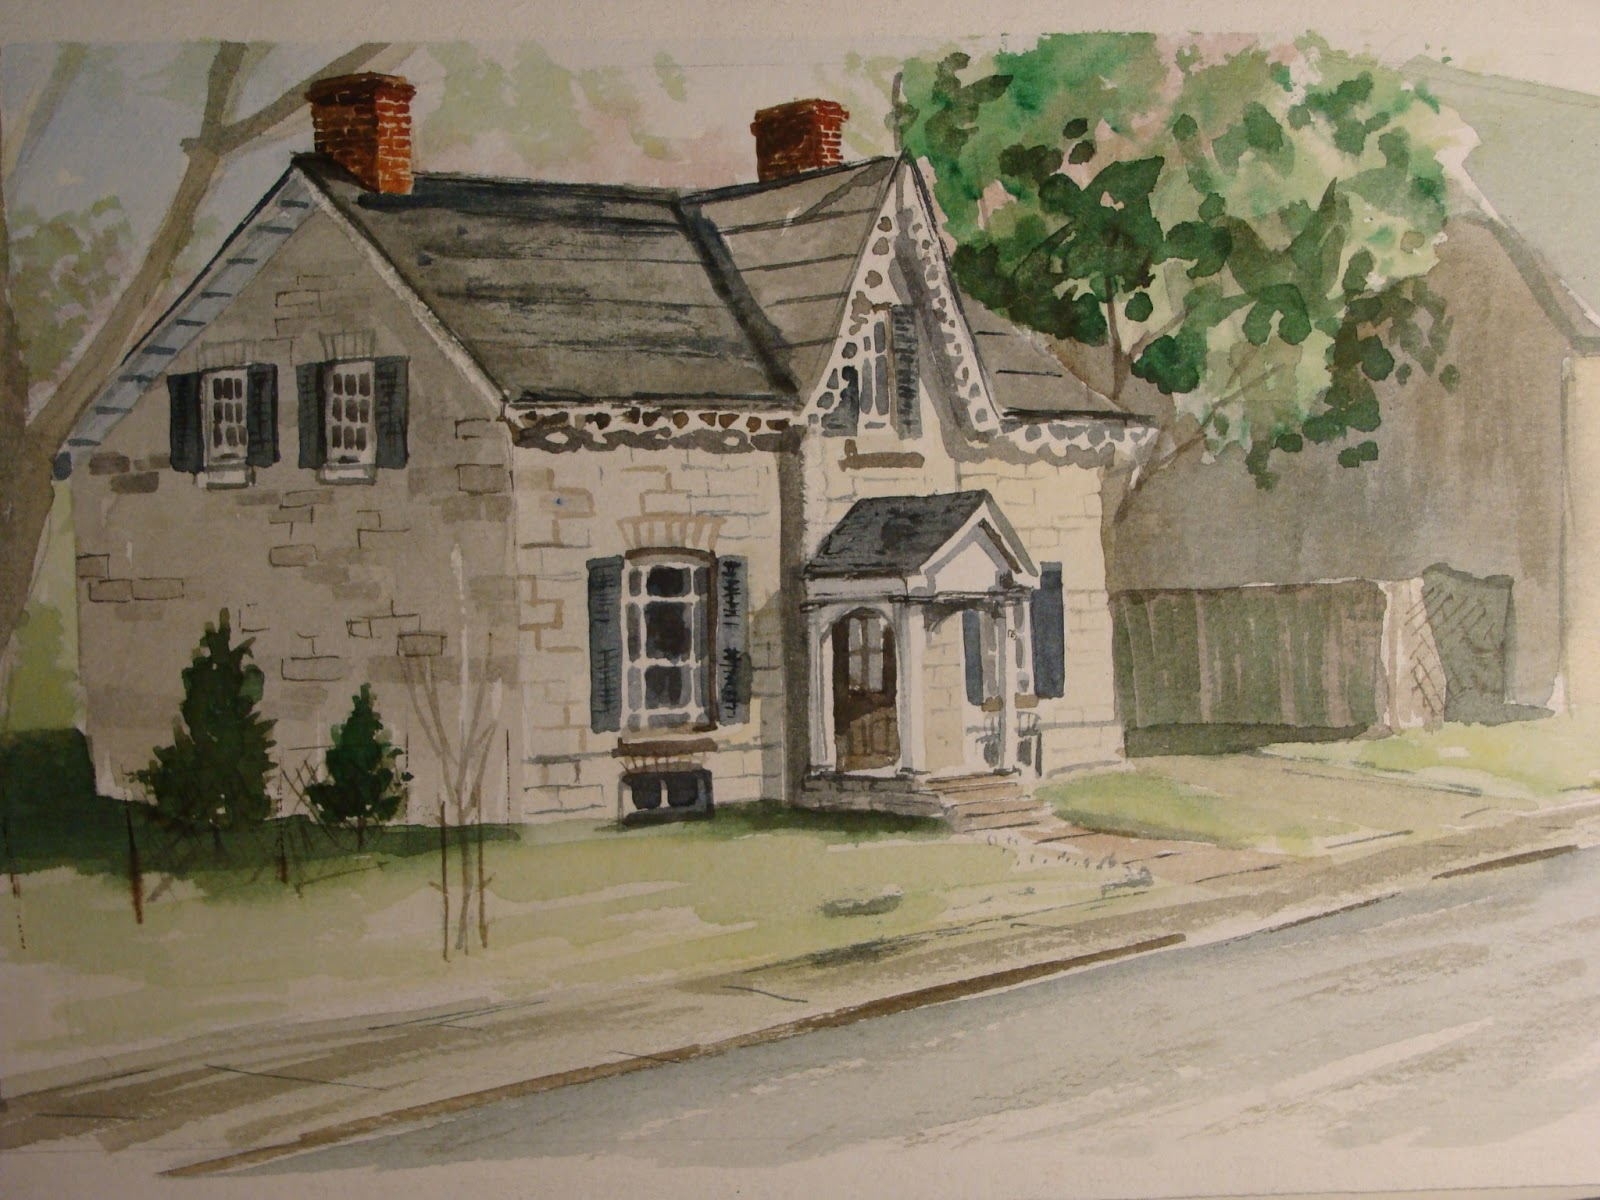 This is an early pure watercolour study en plein air of a gothic revival style home located in the historic sydenham ward on william street in kingston